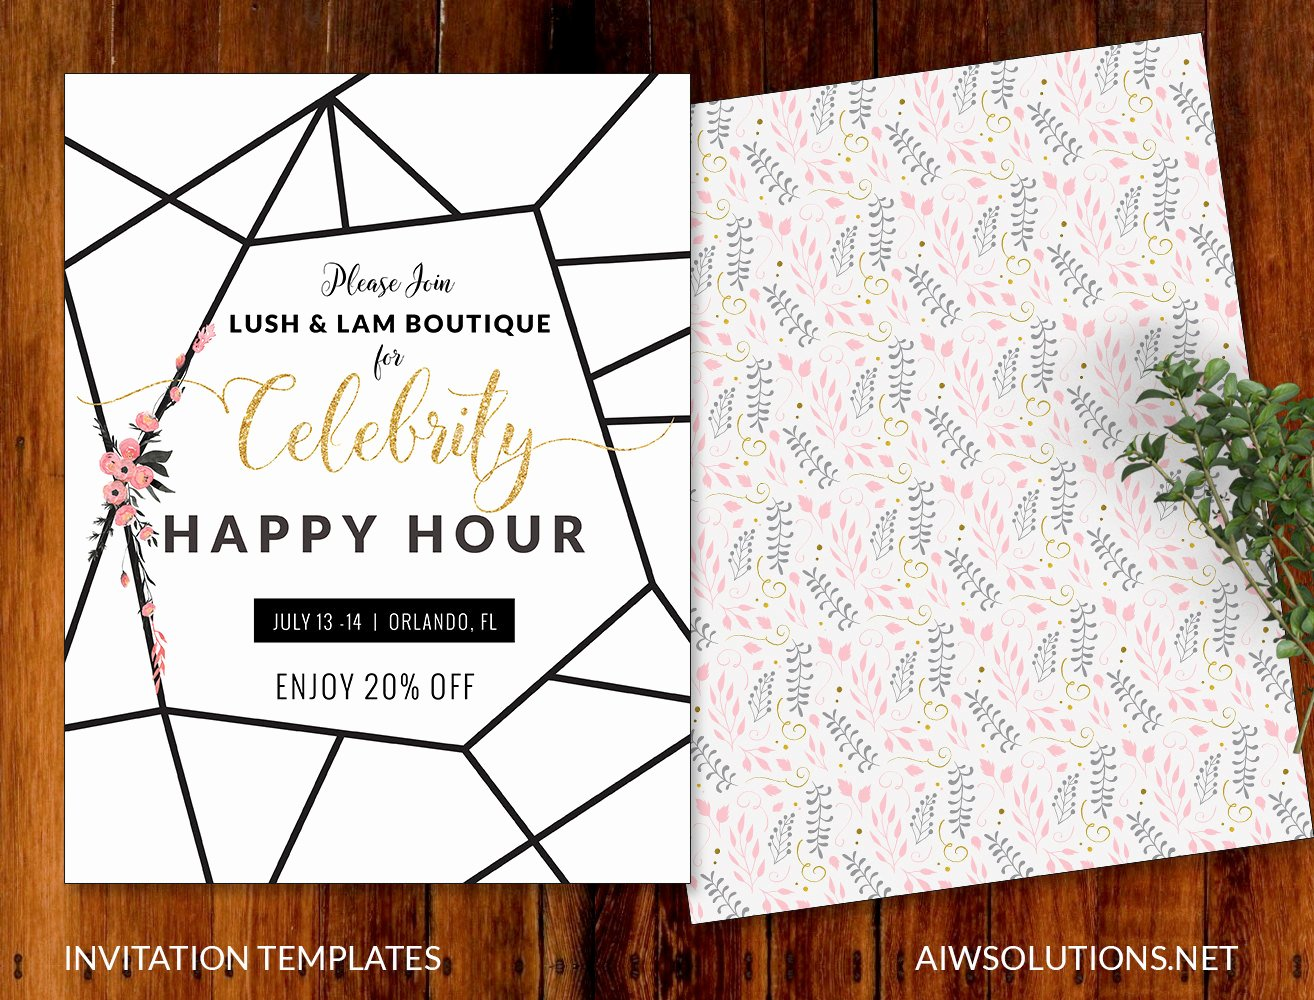 Happy Hour Invitation Template Luxury Invitations event Template Save the Date Template Flyer